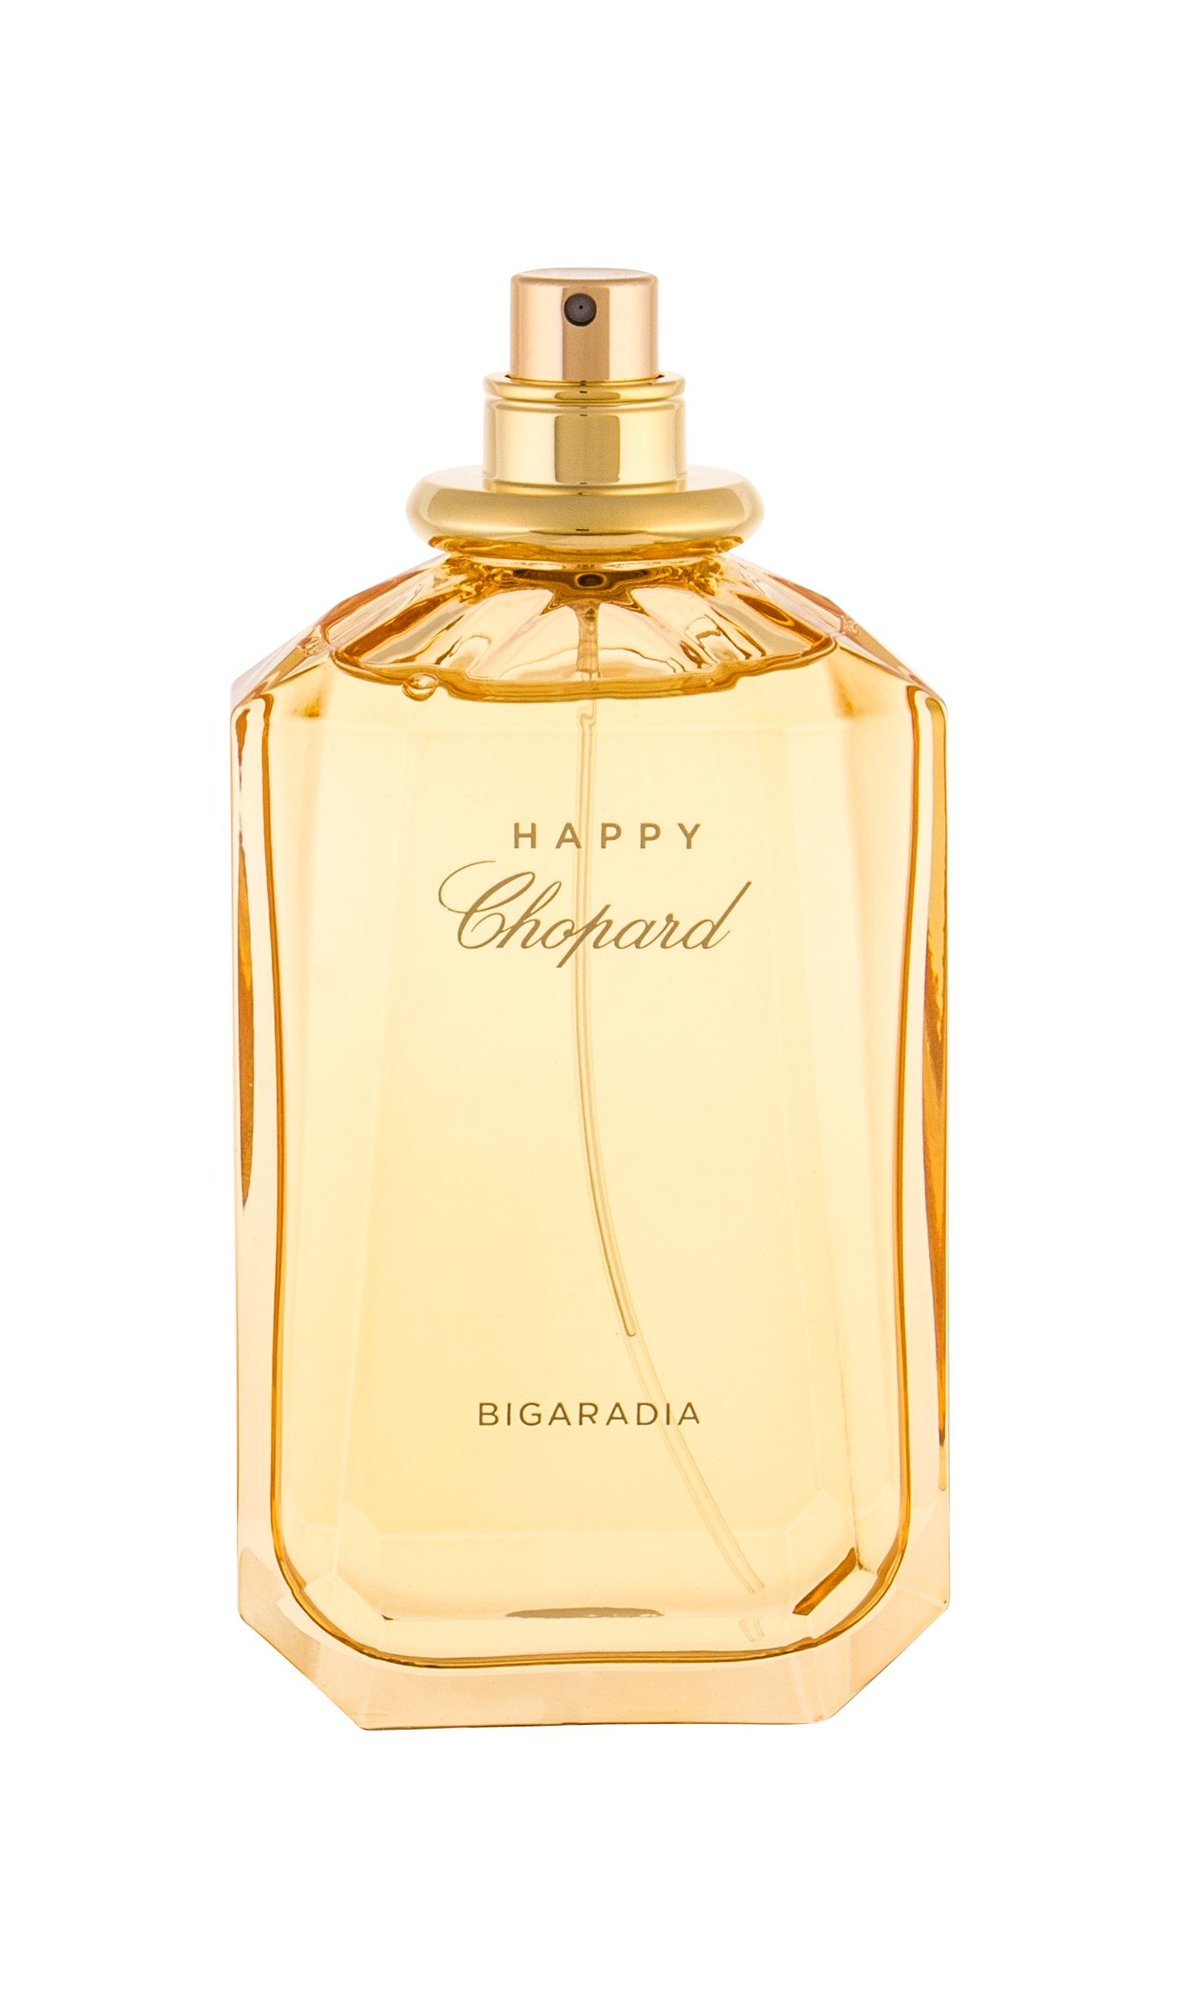 Chopard Happy Chopard Bigaradia Eau de Parfum 100ml